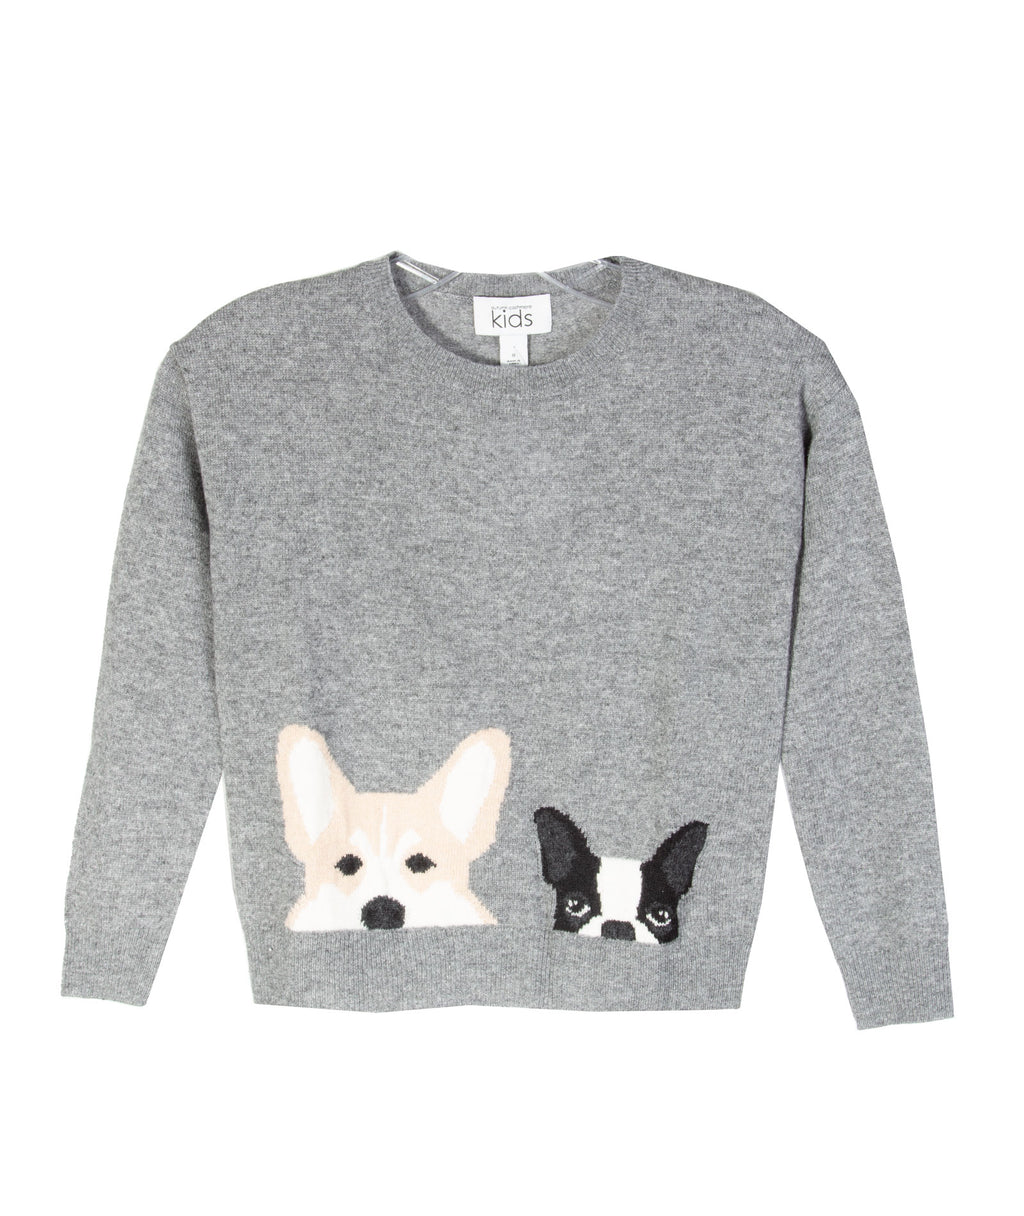 Autumn Cashmere Girls Dogs Sweater